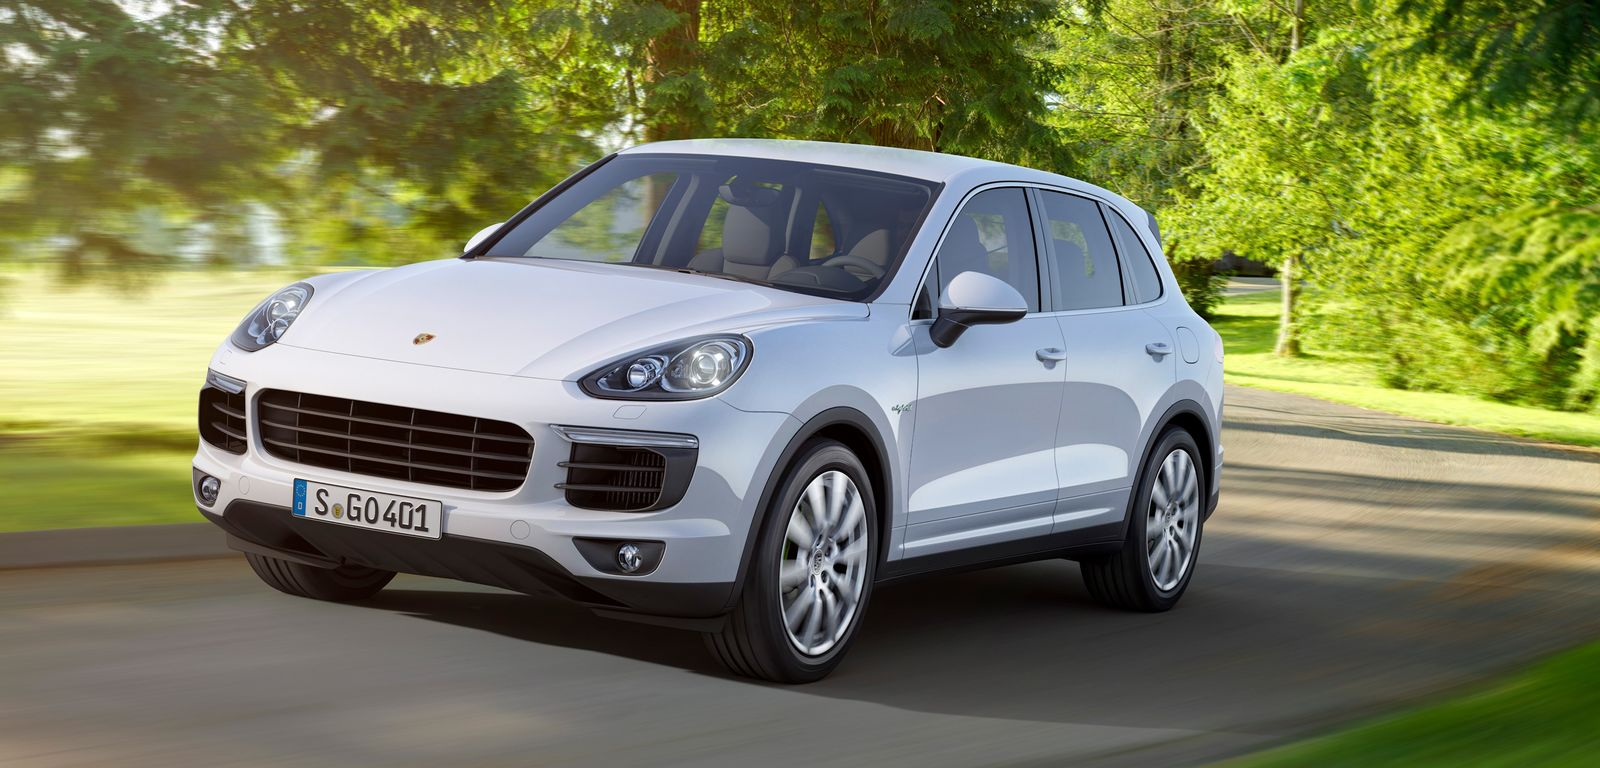 As with many modern hybrids the porsche cayenne is able to be charged via a mains socket it s an ideal choice if you have a fairly short commute the 22